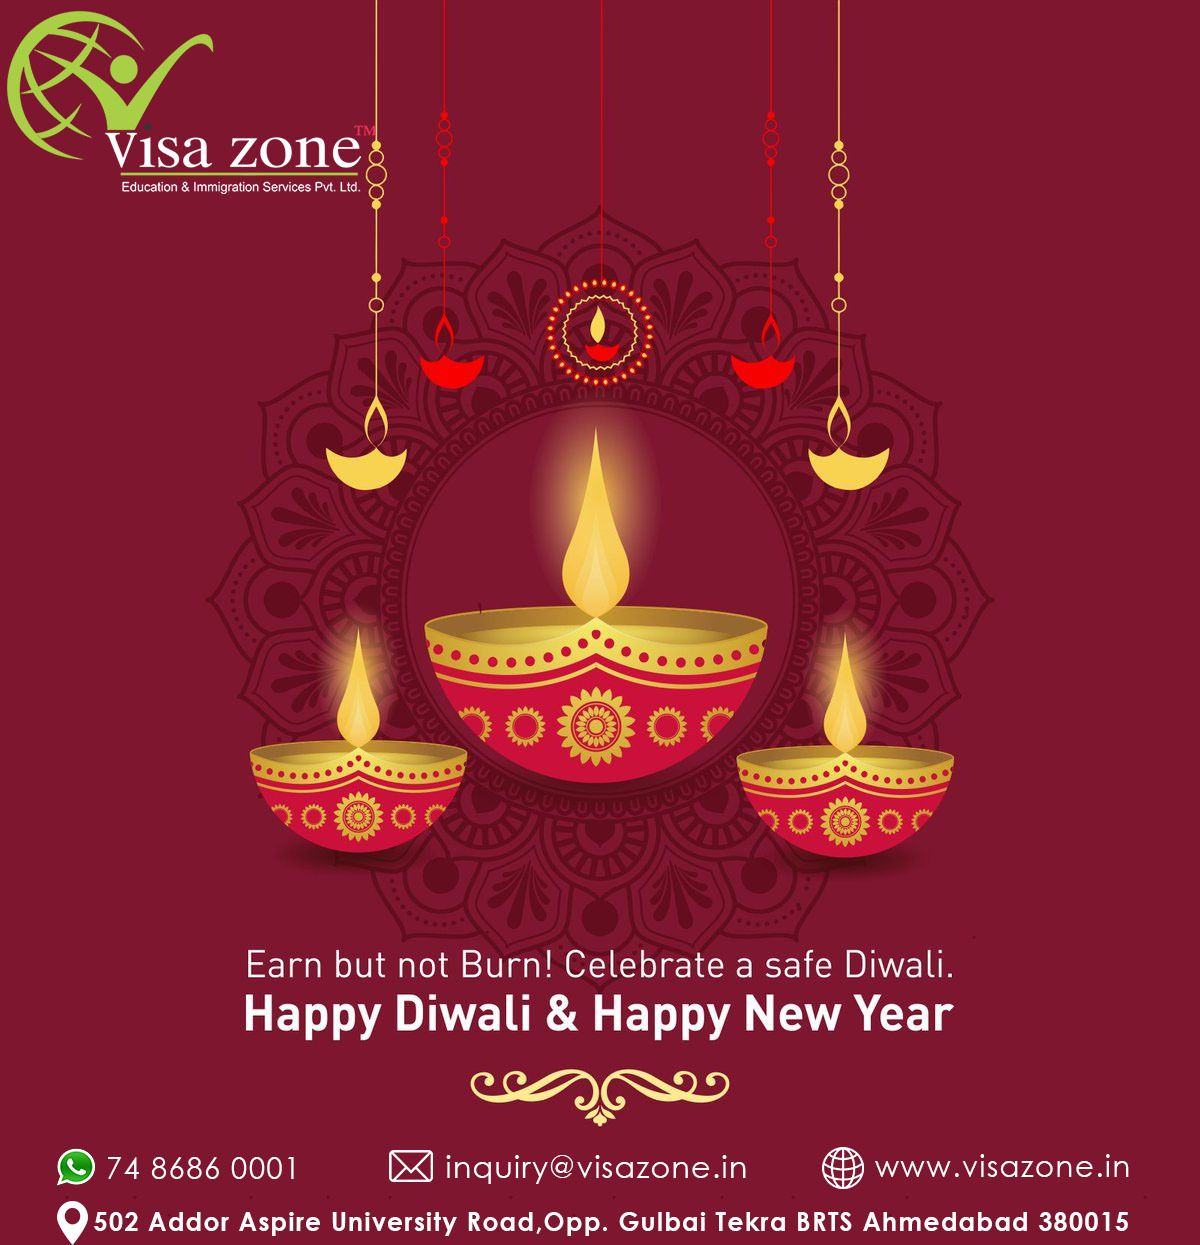 Diwali Is Celebrated As The New Year Day In The Hindu Calendar Across India And Hindus In Other Parts Of The World A Number Of Tradition Happy Diwali Hindu New Year